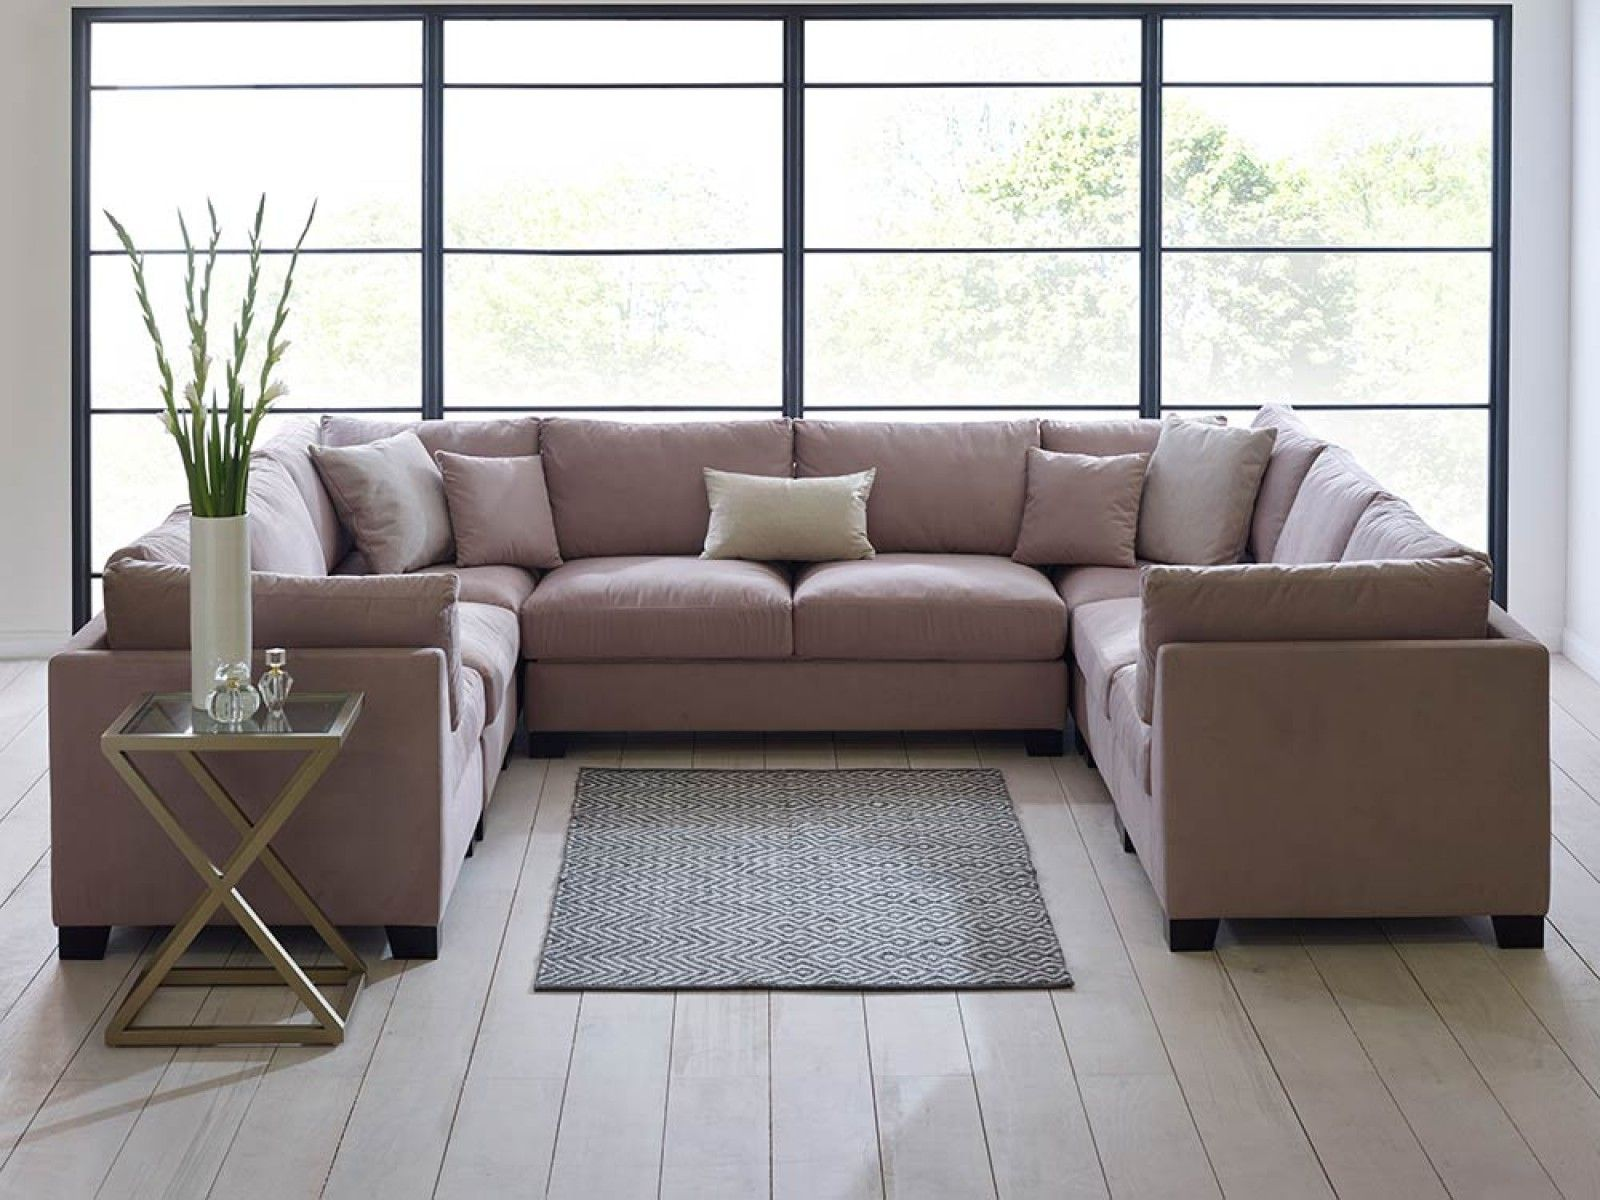 U Couch Isabelle U Shaped Sectional Sofa Set Liu Unconventional Spaces